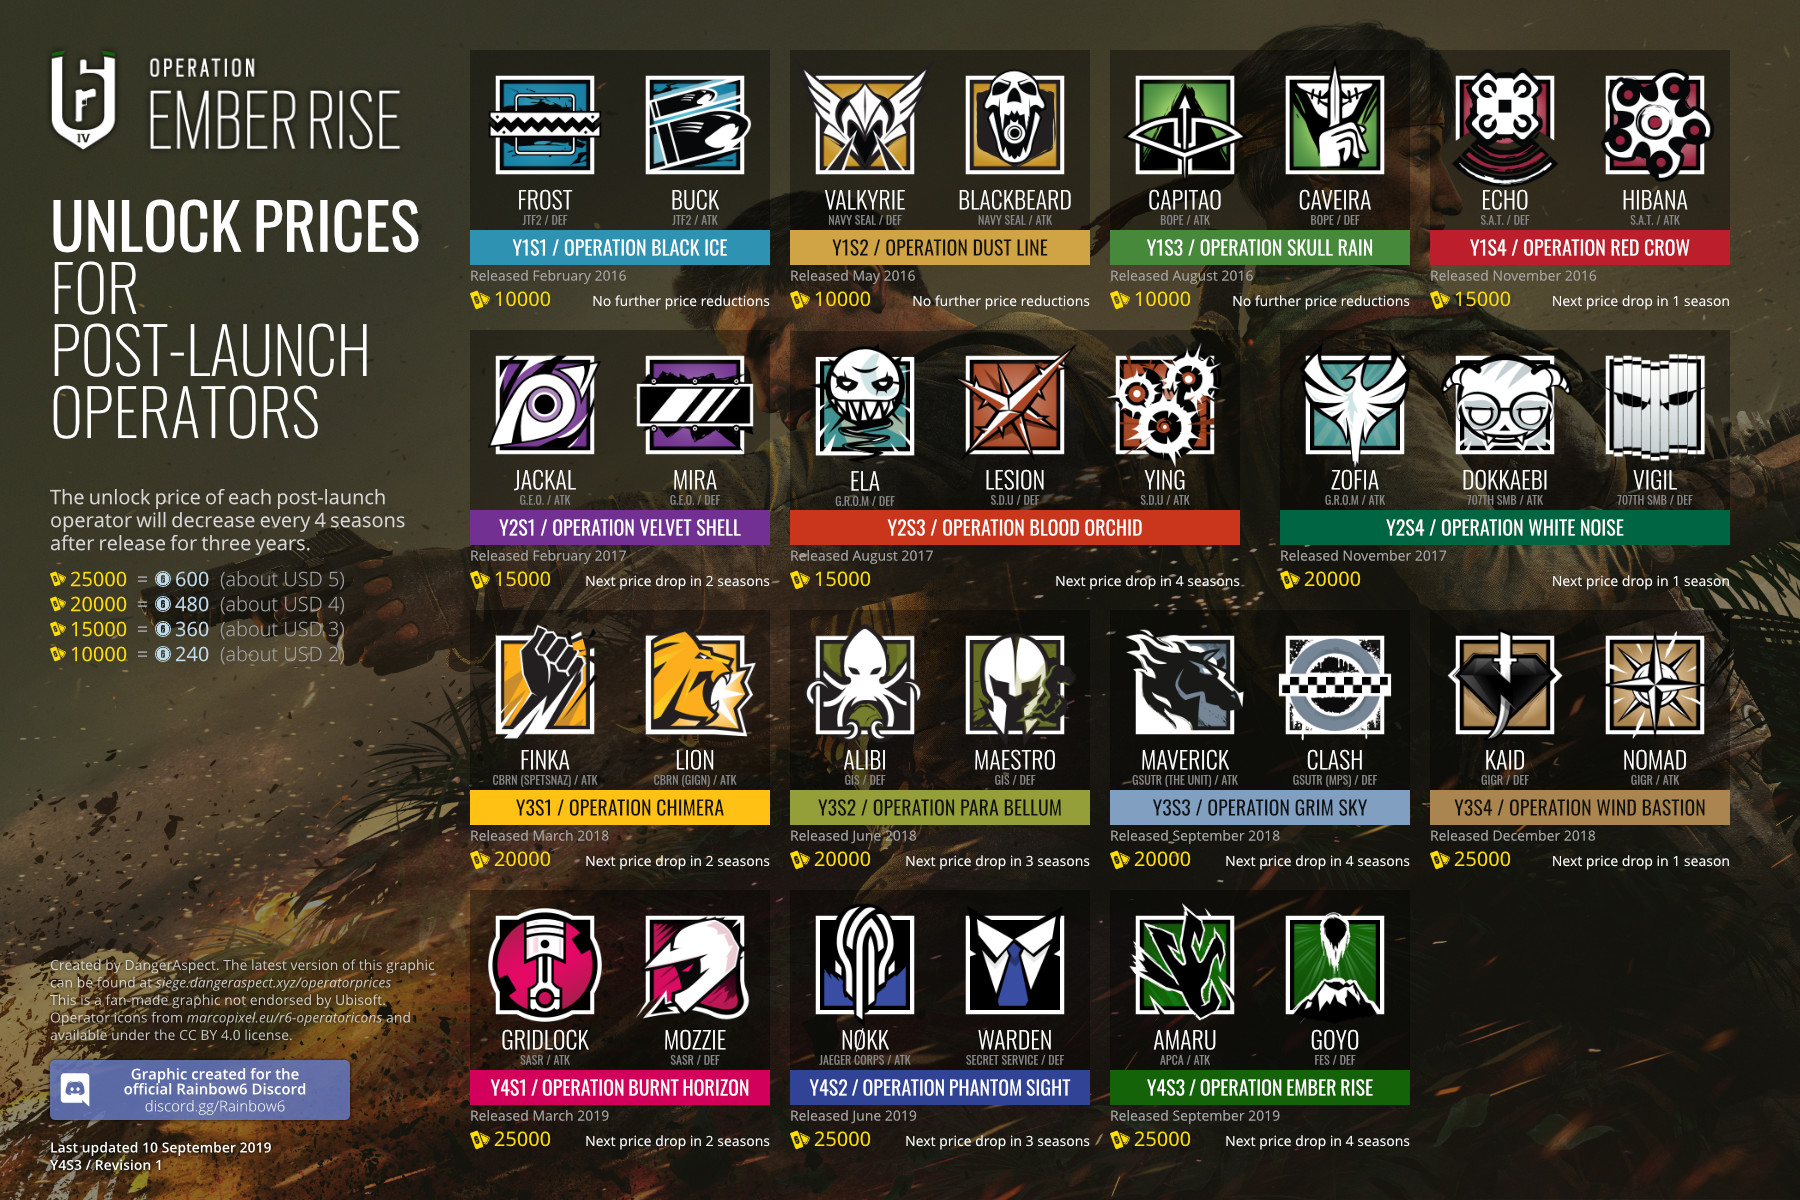 Graphics on DLC Operator Unlock Prices